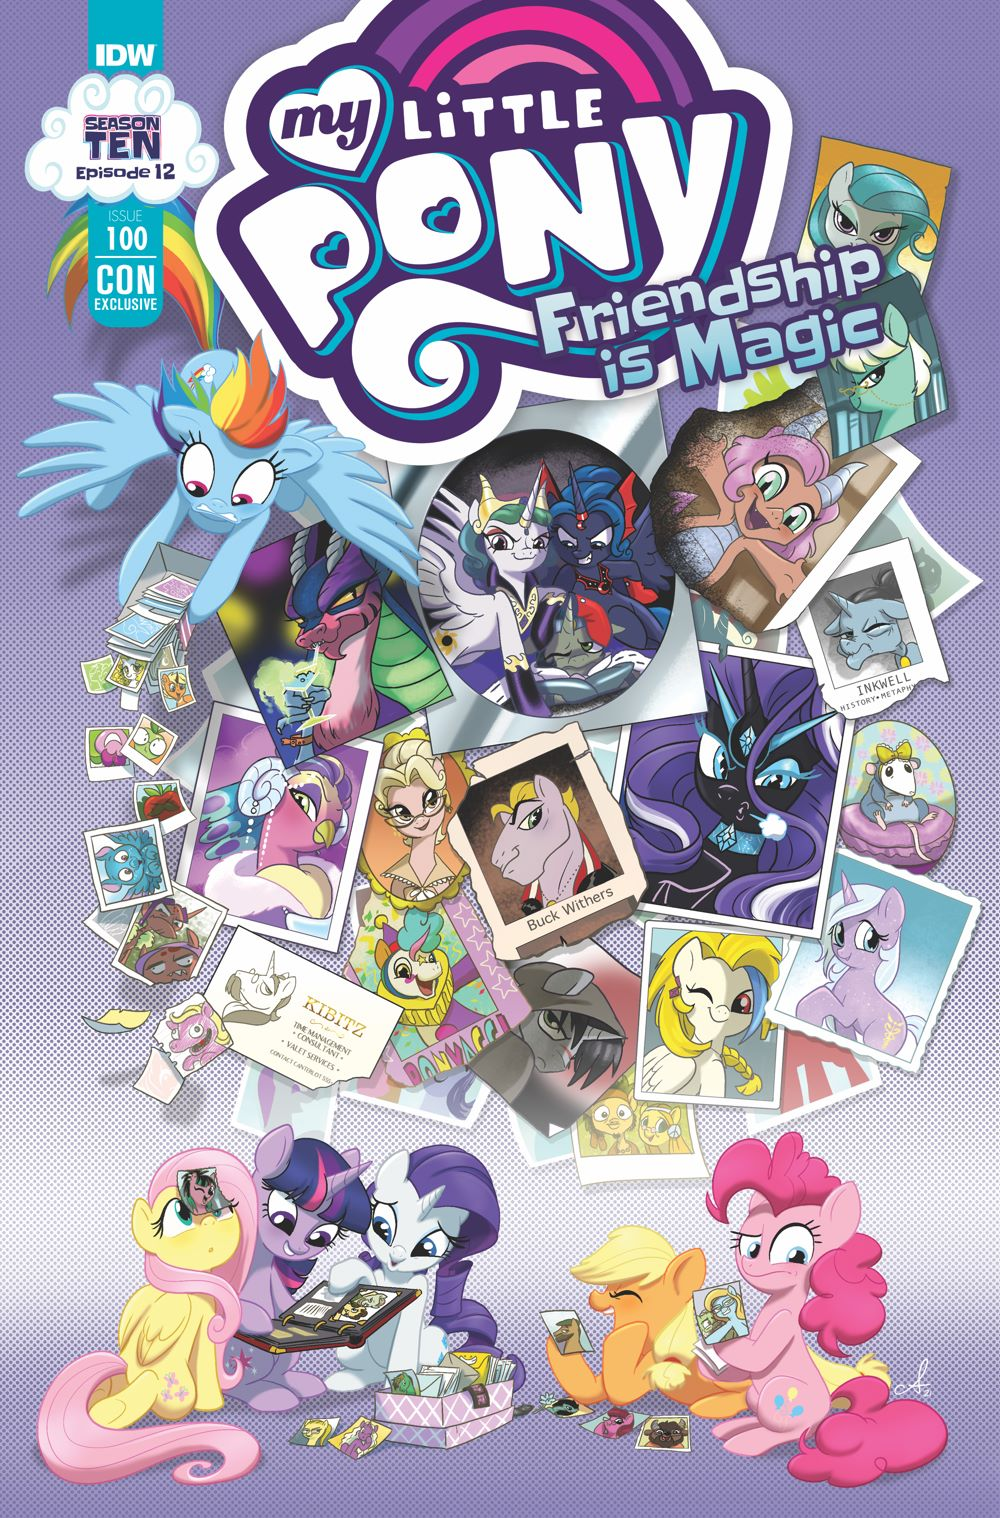 MLP100_12-coverCON ComicList Previews: MY LITTLE PONY FRIENDSHIP IS MAGIC #100